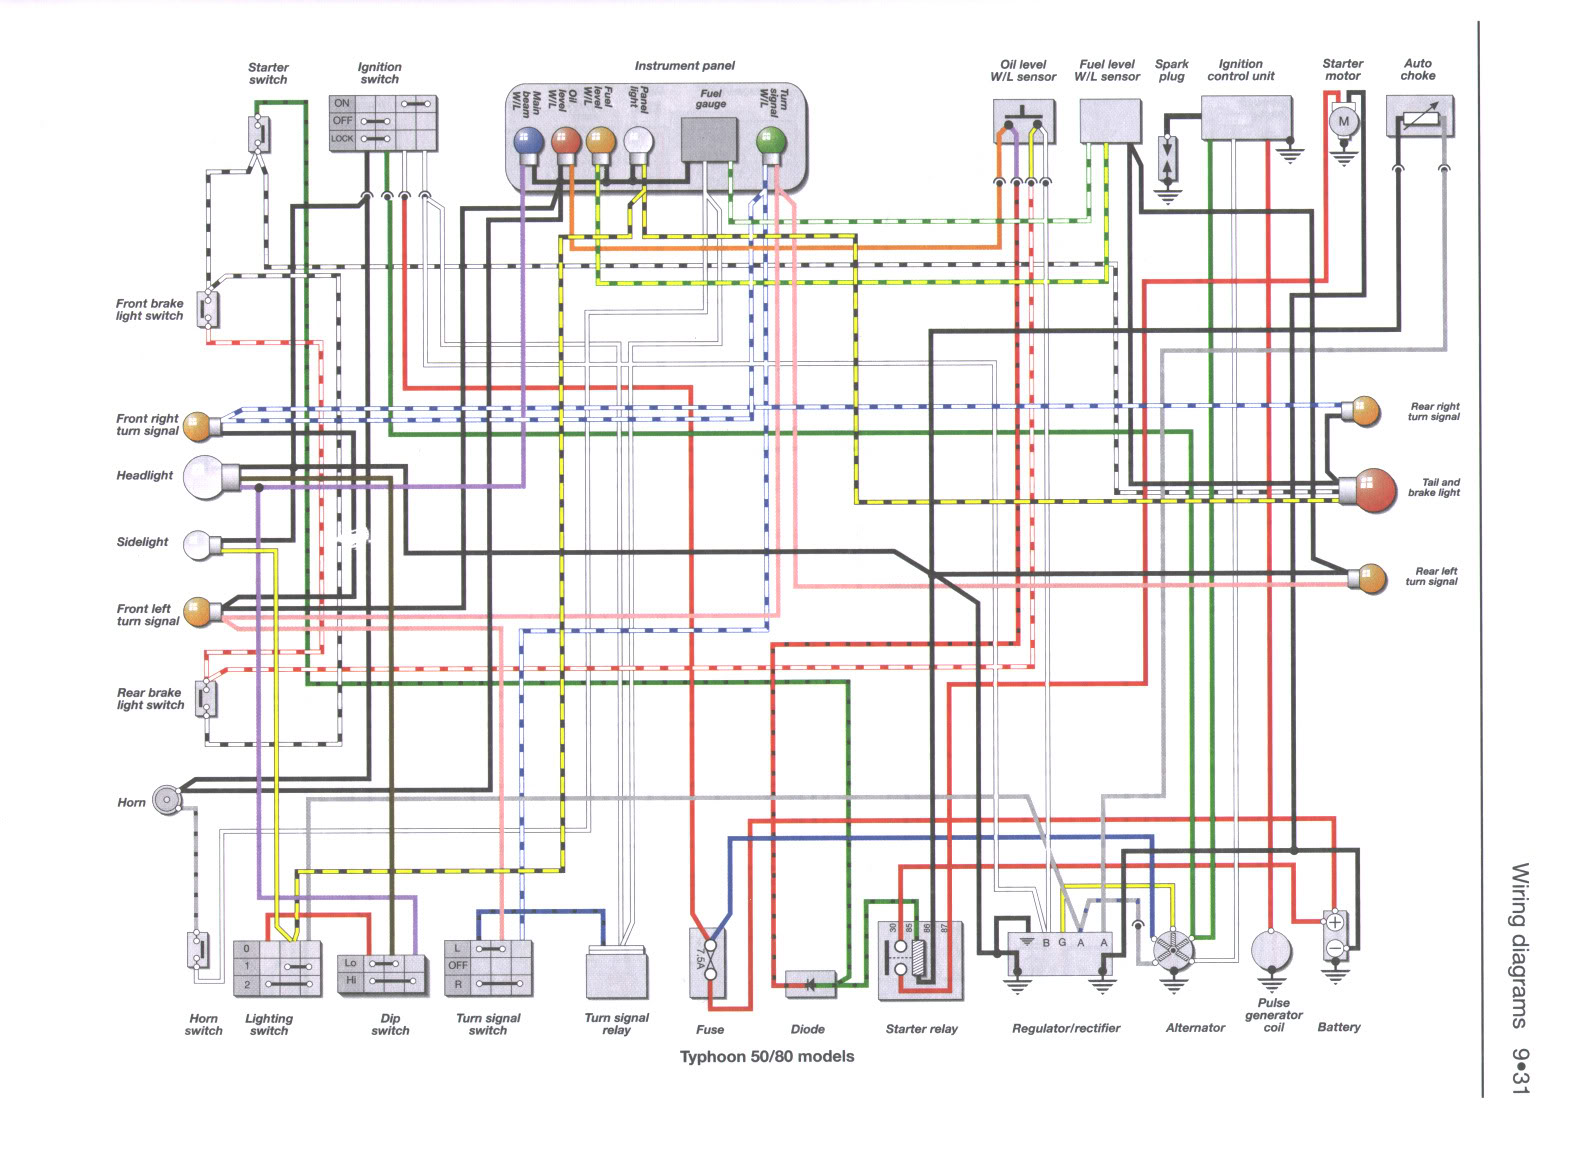 Addition Chinese Atv Wiring Diagrams On Tao 50 Scooter Wiring Diagram